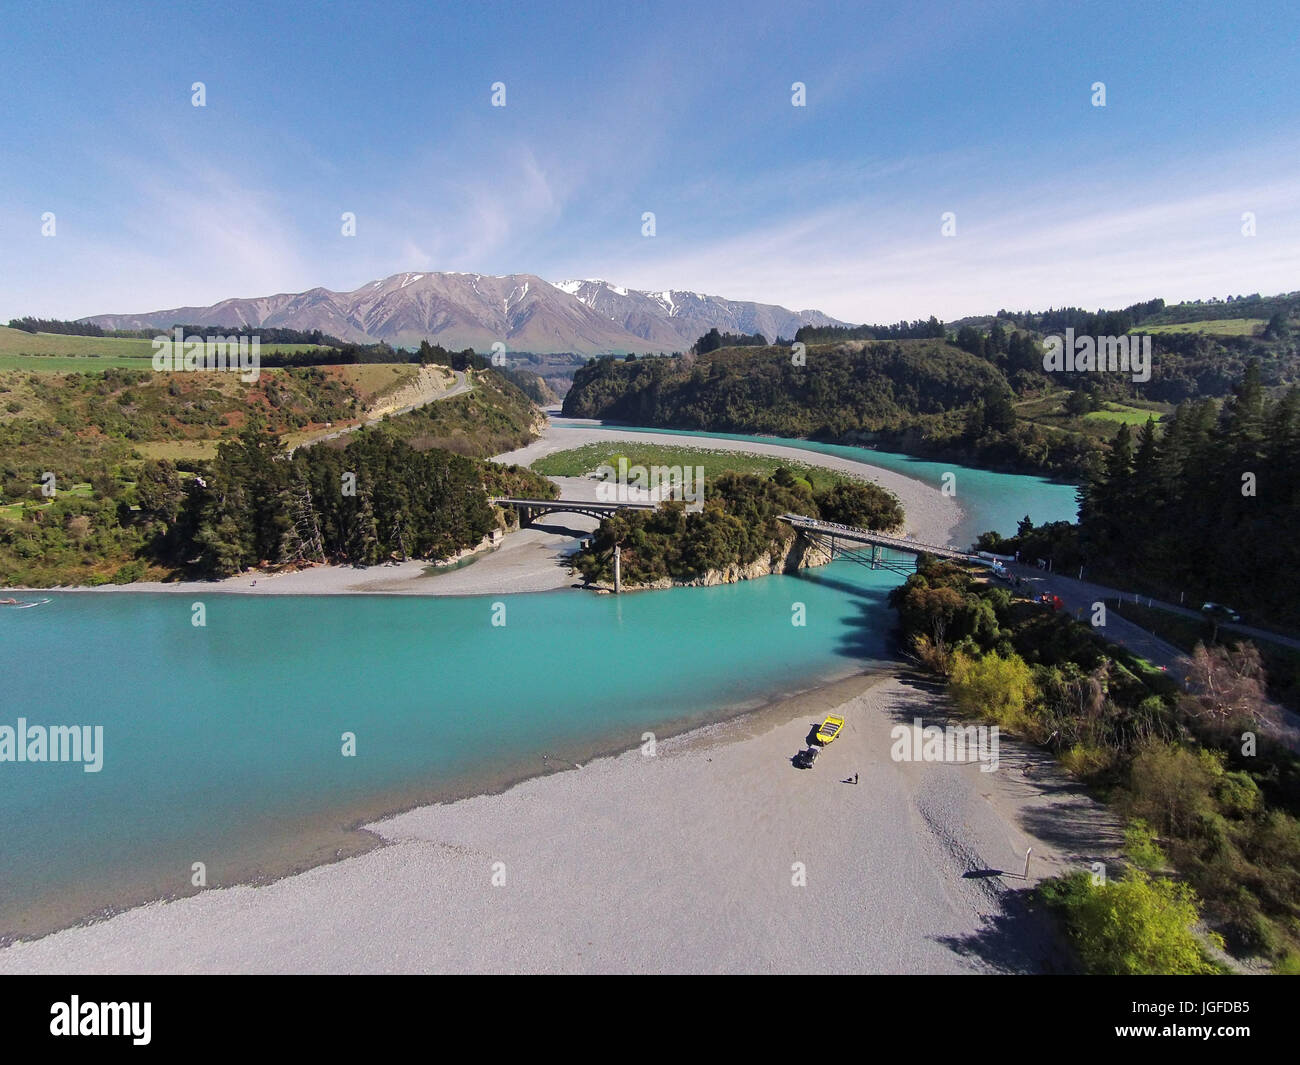 Mount Hutt Range, Rakaia Gorge Bridge (1882), Rakaia River, and Rakaia Gorge, Canterbury, South Island, New Zealand - Stock Image